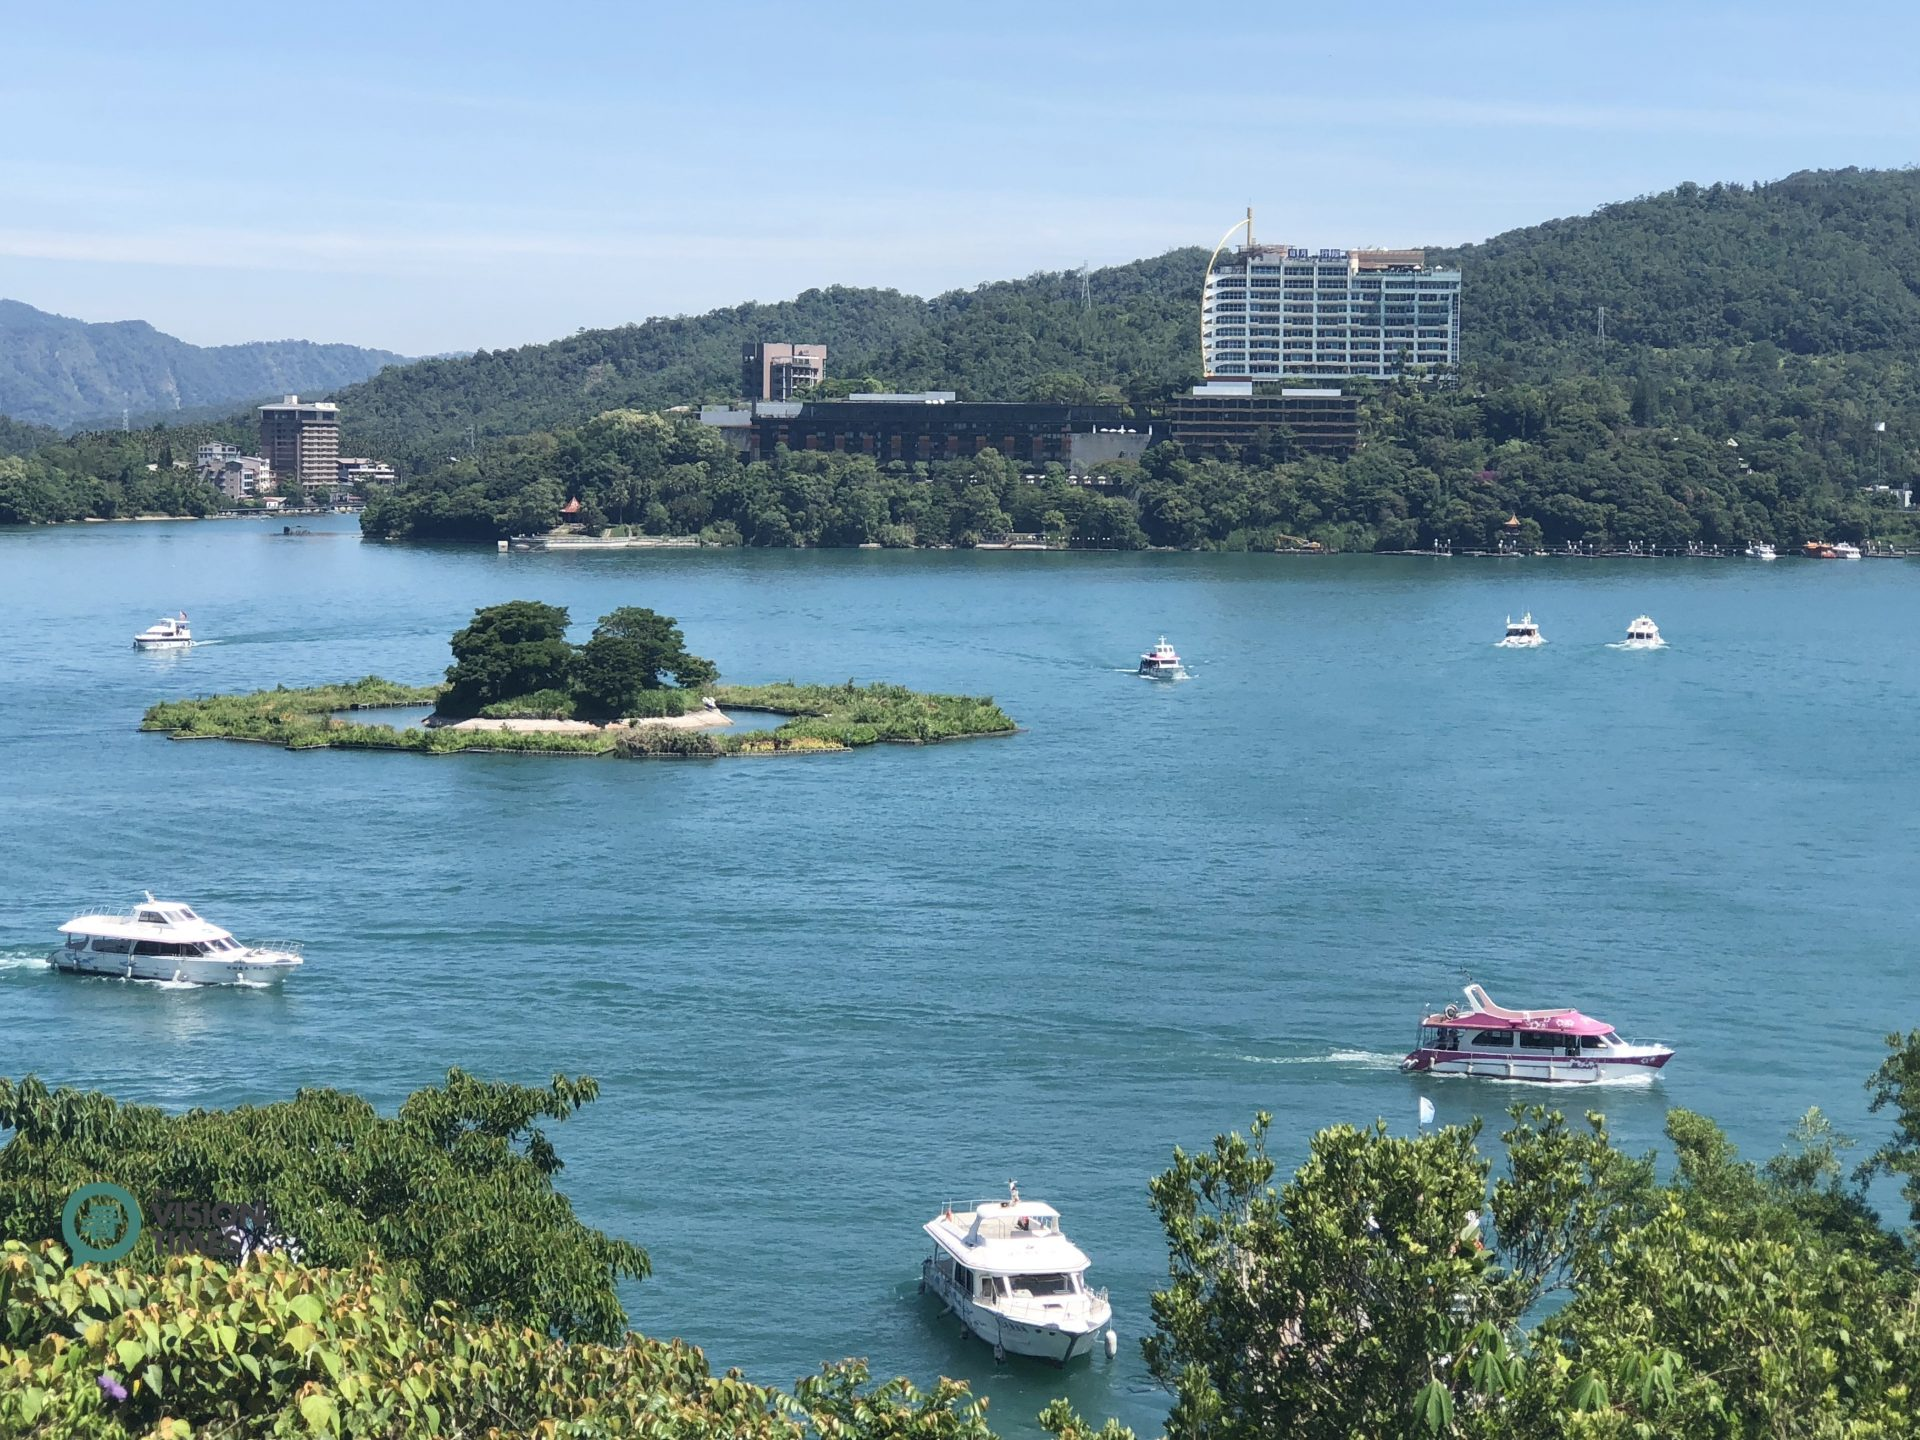 One of the best ways to tour and see Sun Moon Lake is to take a boat ride on the lake. (Image: Billy Shyu / Vision Times)